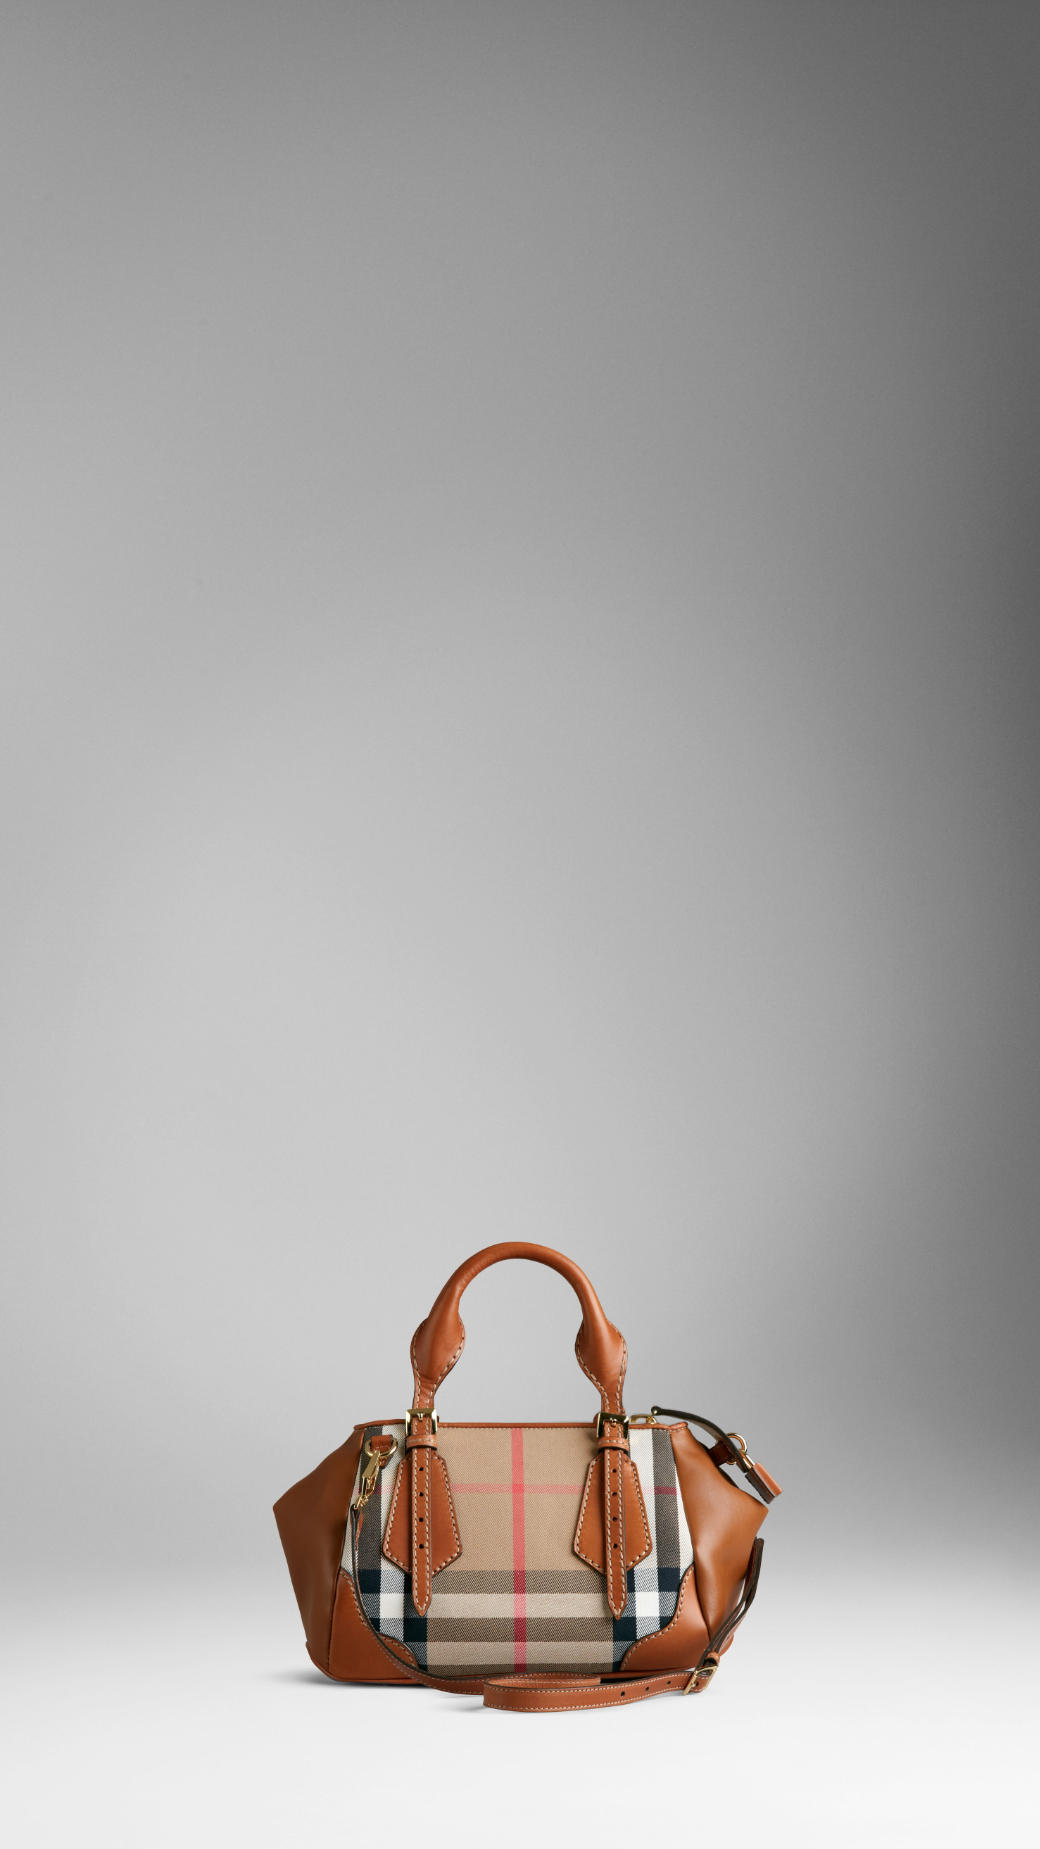 43e165d9bb56 Lyst - Burberry The Small Blaze in Check and Leather in Brown